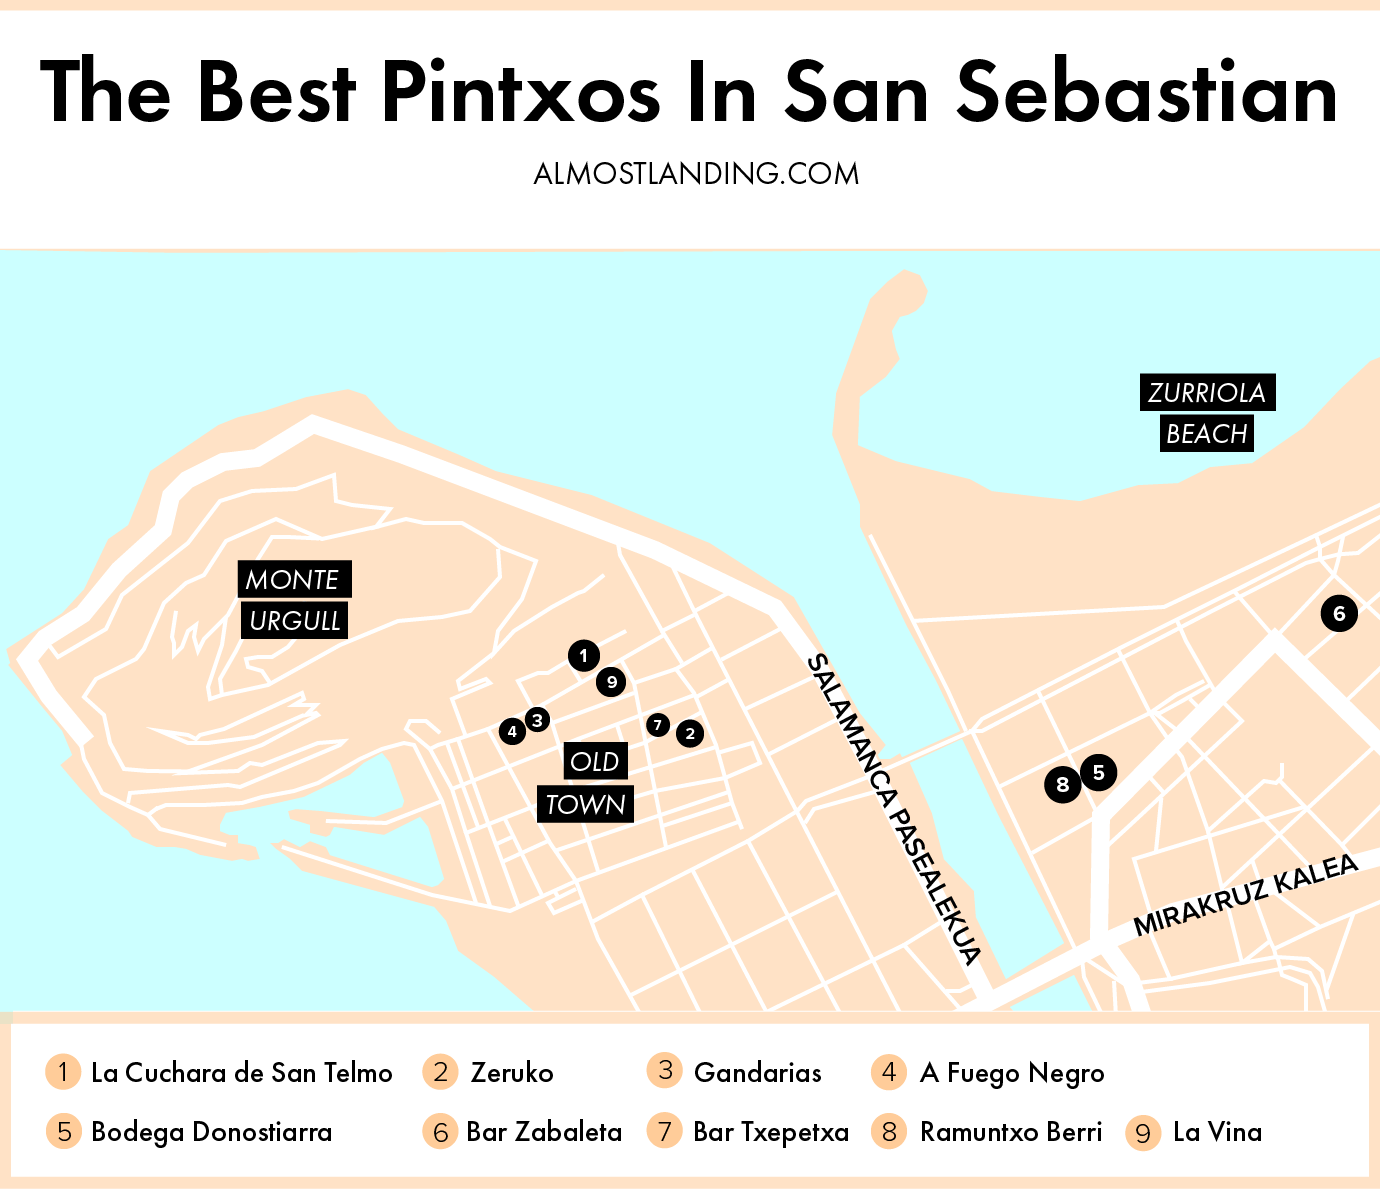 Best Pintxos in San Sebastian Map